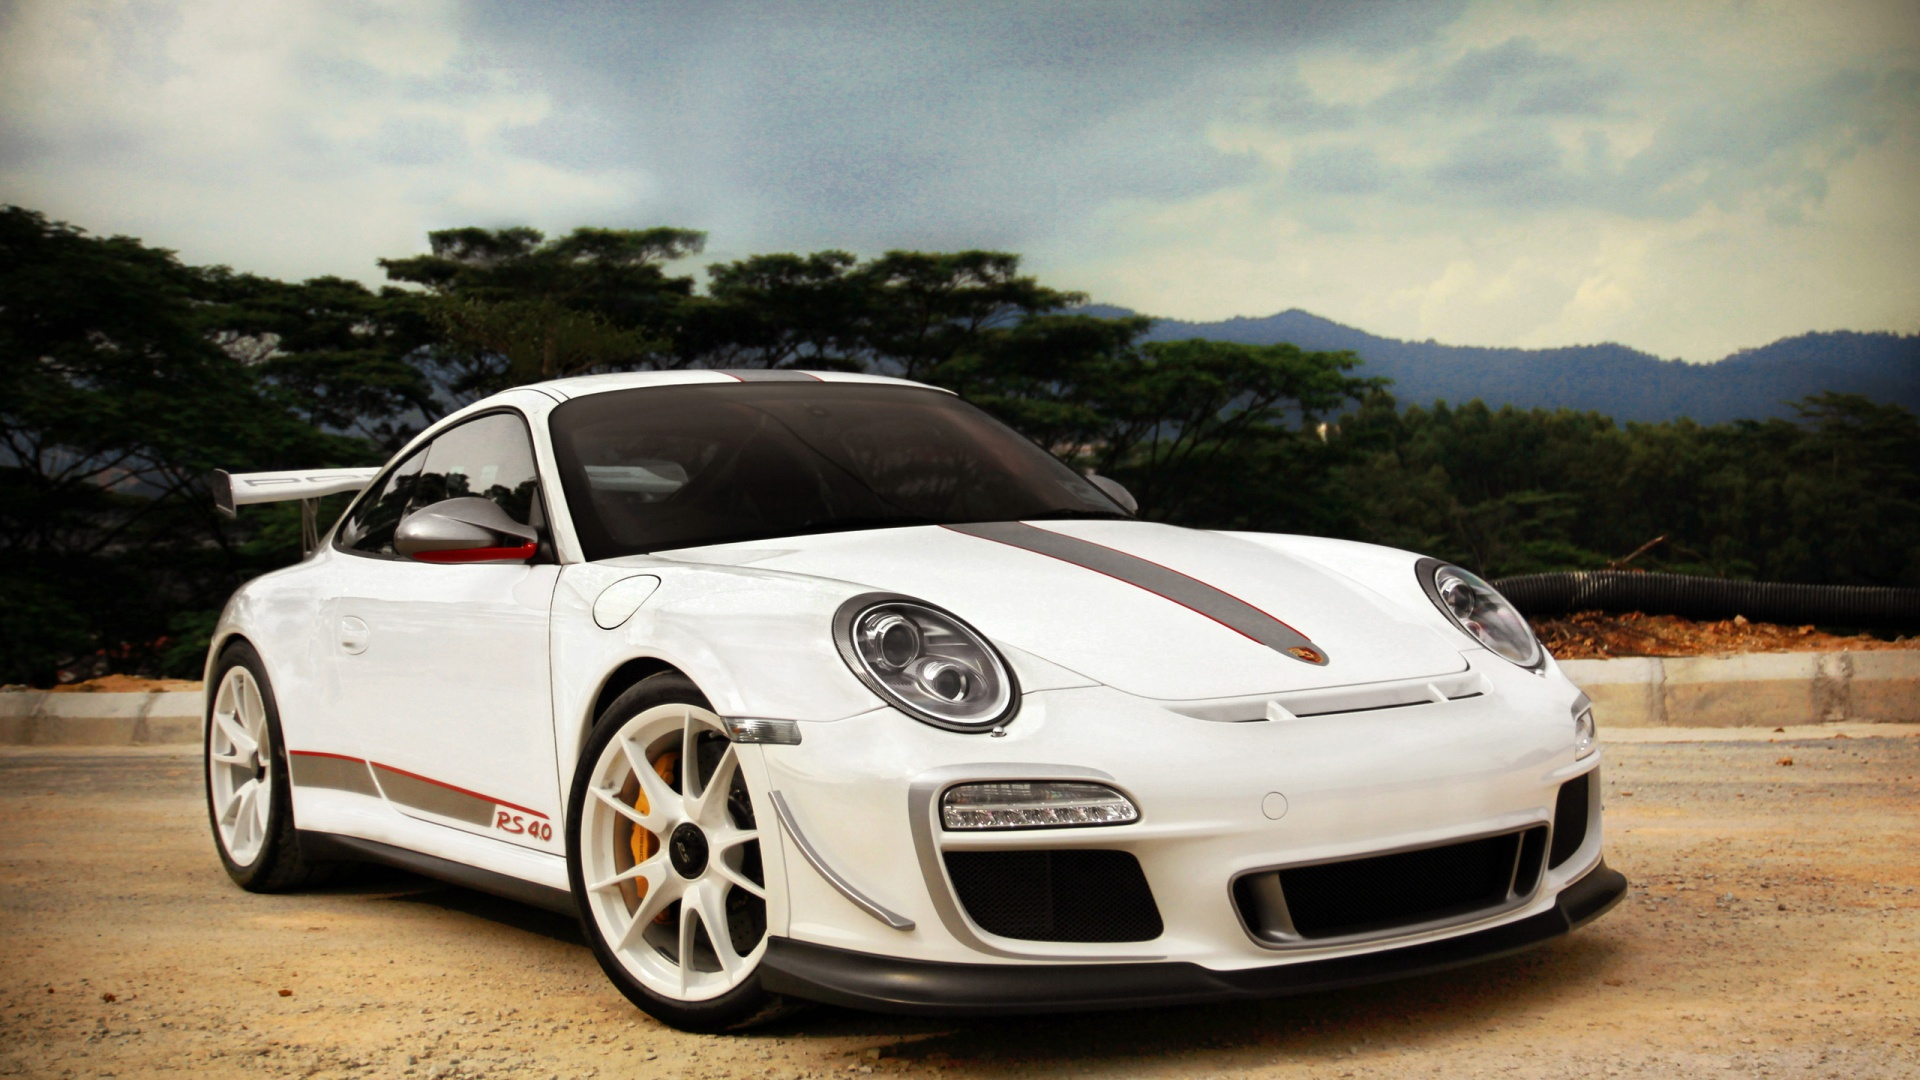 JNH Porsche 911 GT3 Version 02 Wallpapers